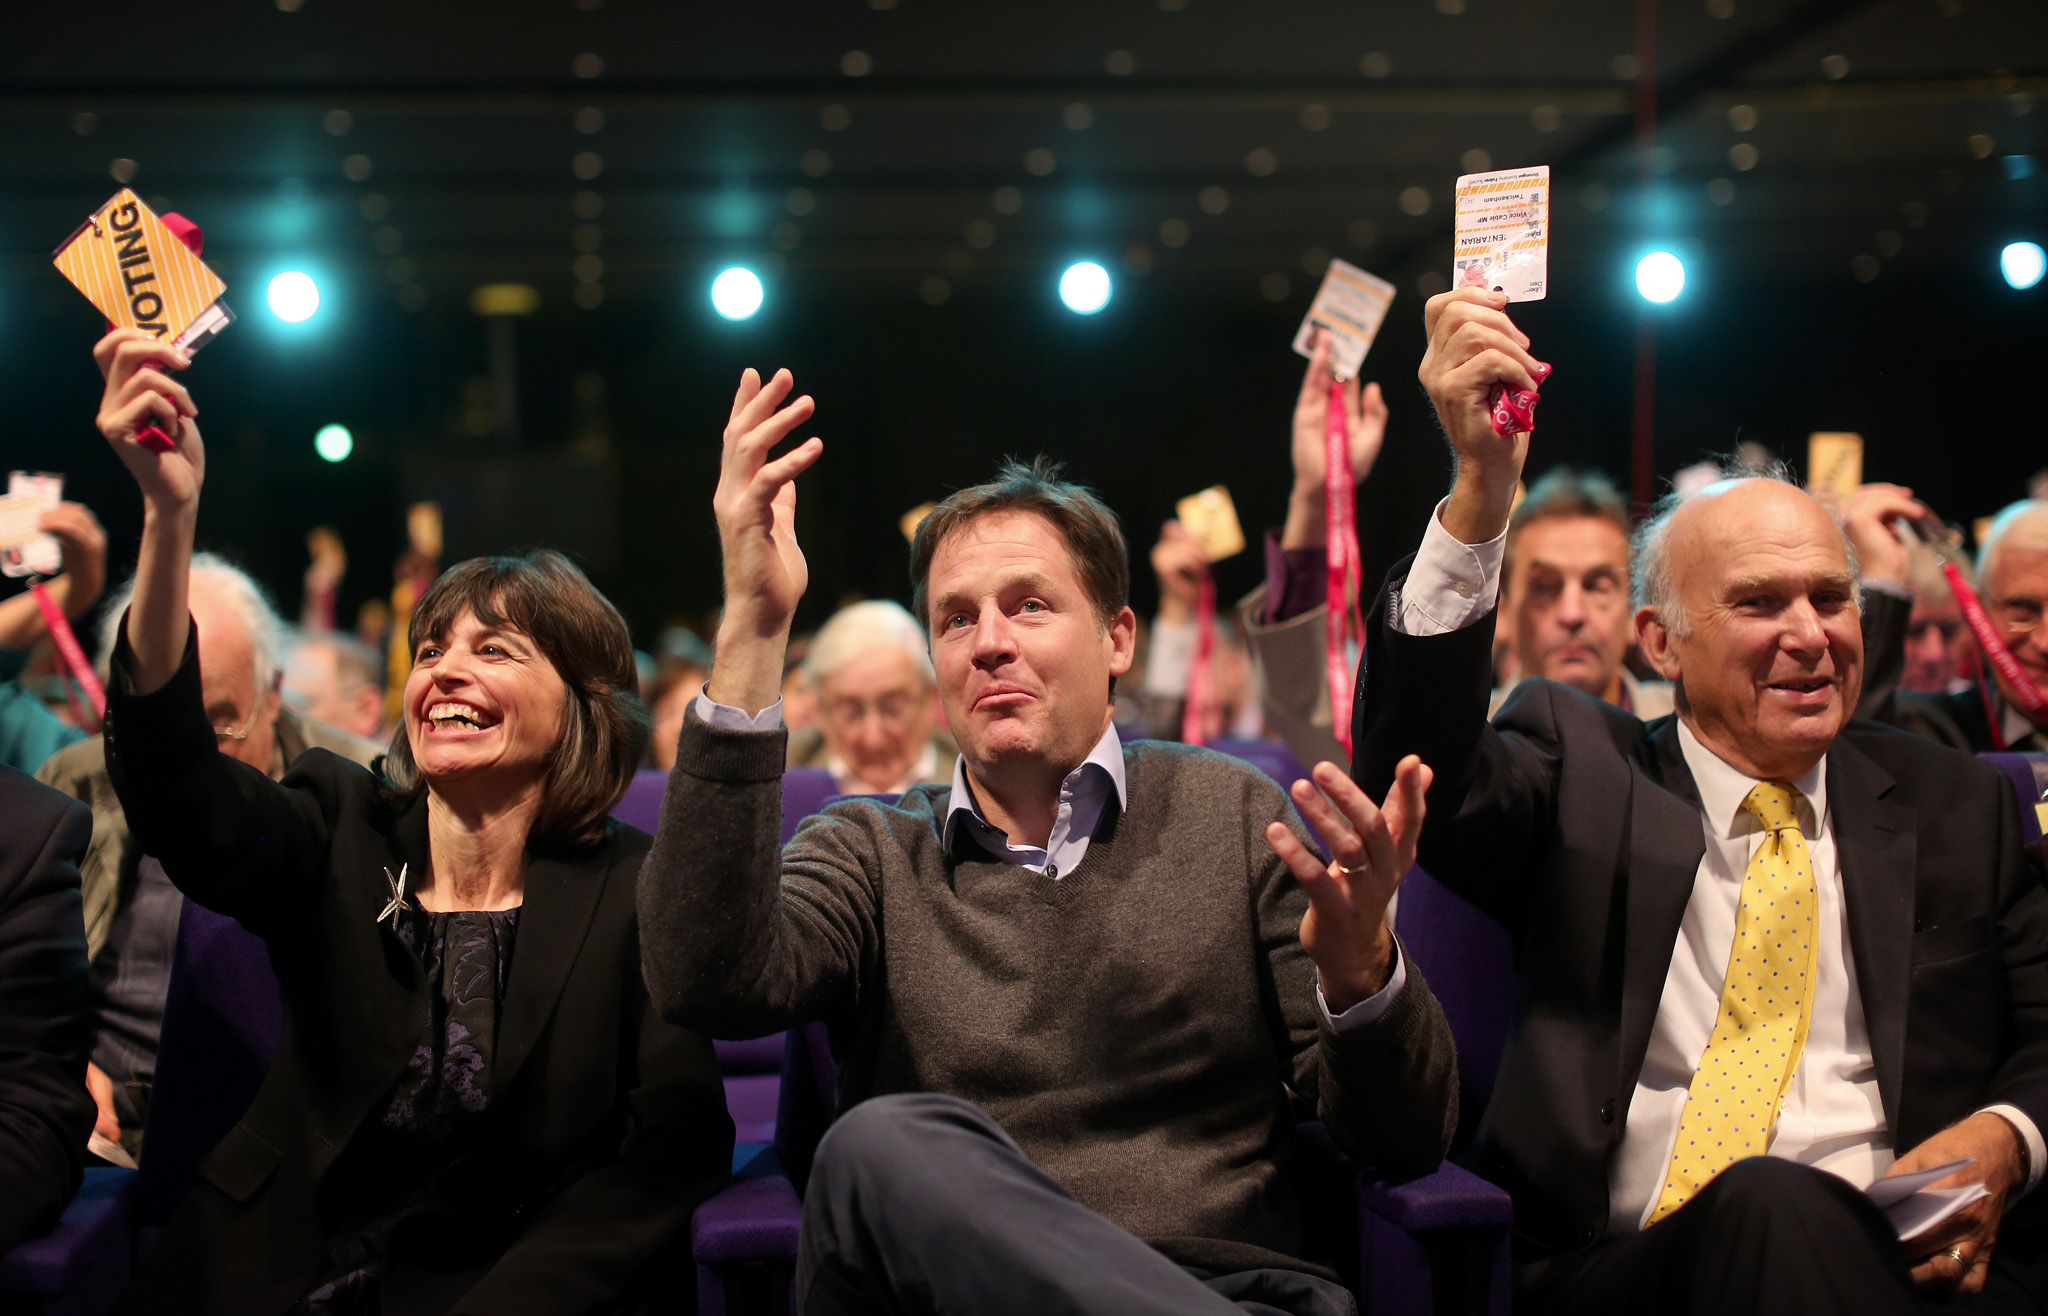 Leader of the Liberal Democrats, Nick Clegg with Business Secretary, Vince Cable in the audience prior to Vince  Cable making his keynote speech at the Liberal Democrat party conference in Glasgow.